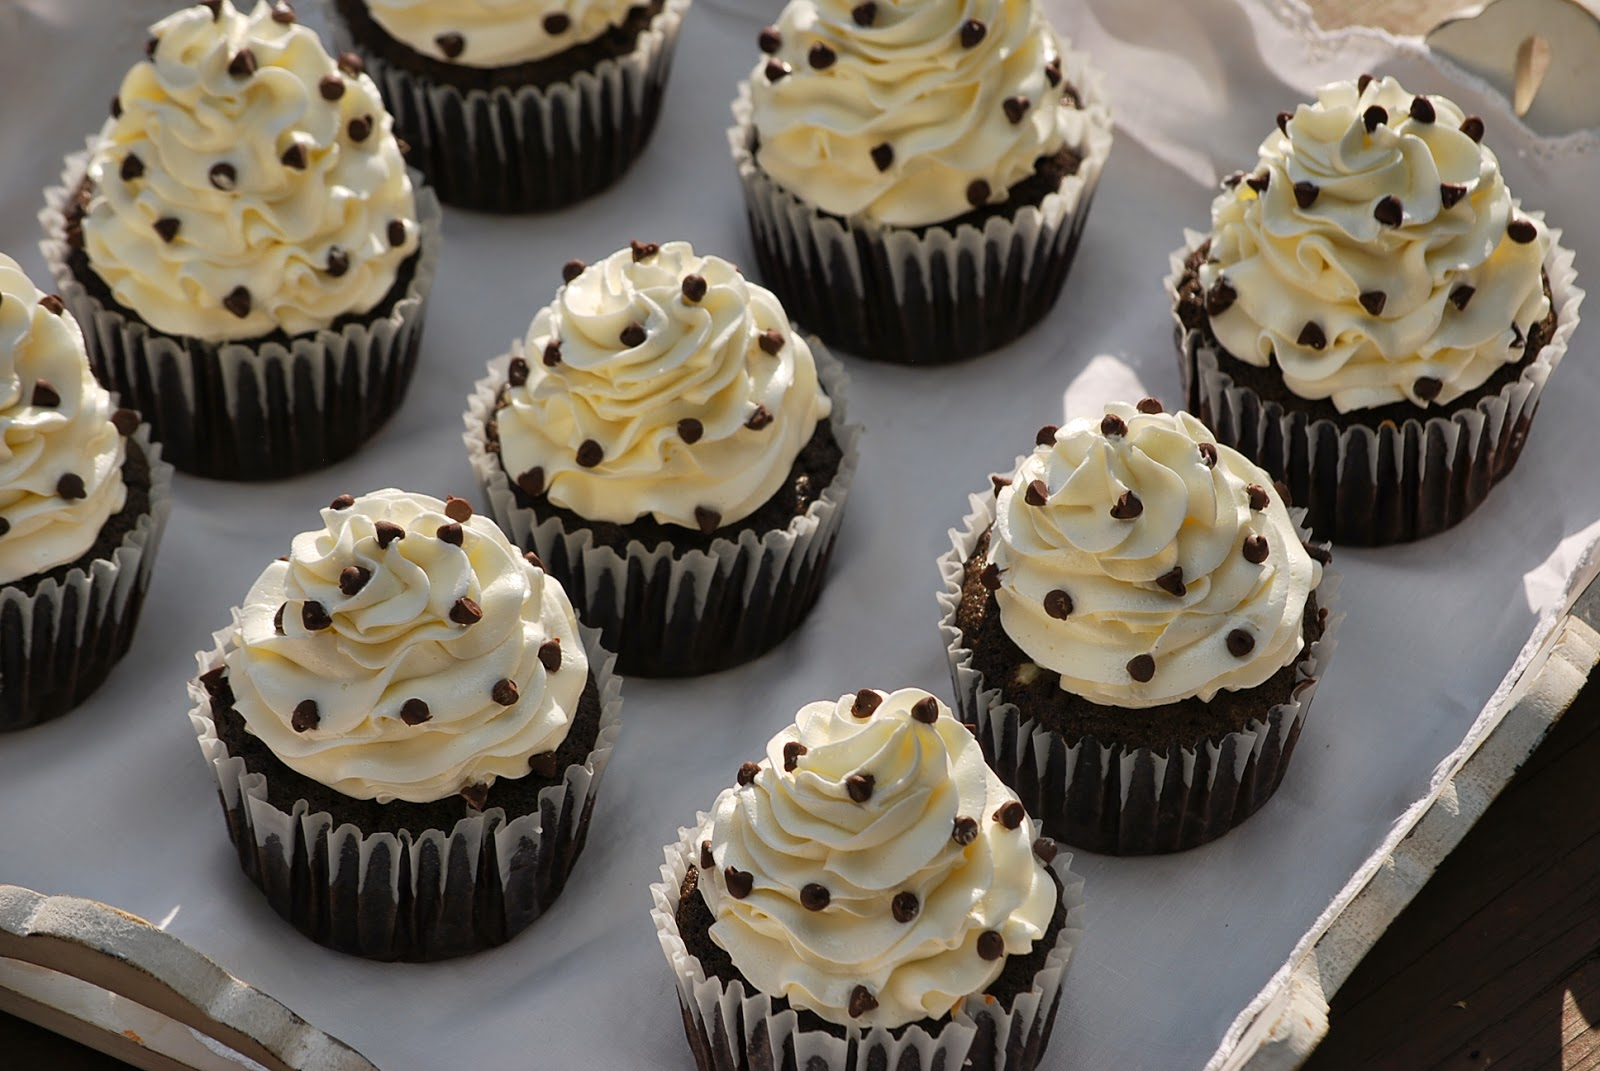 My story in recipes: Cream Cheese Stuffed Cupcakes